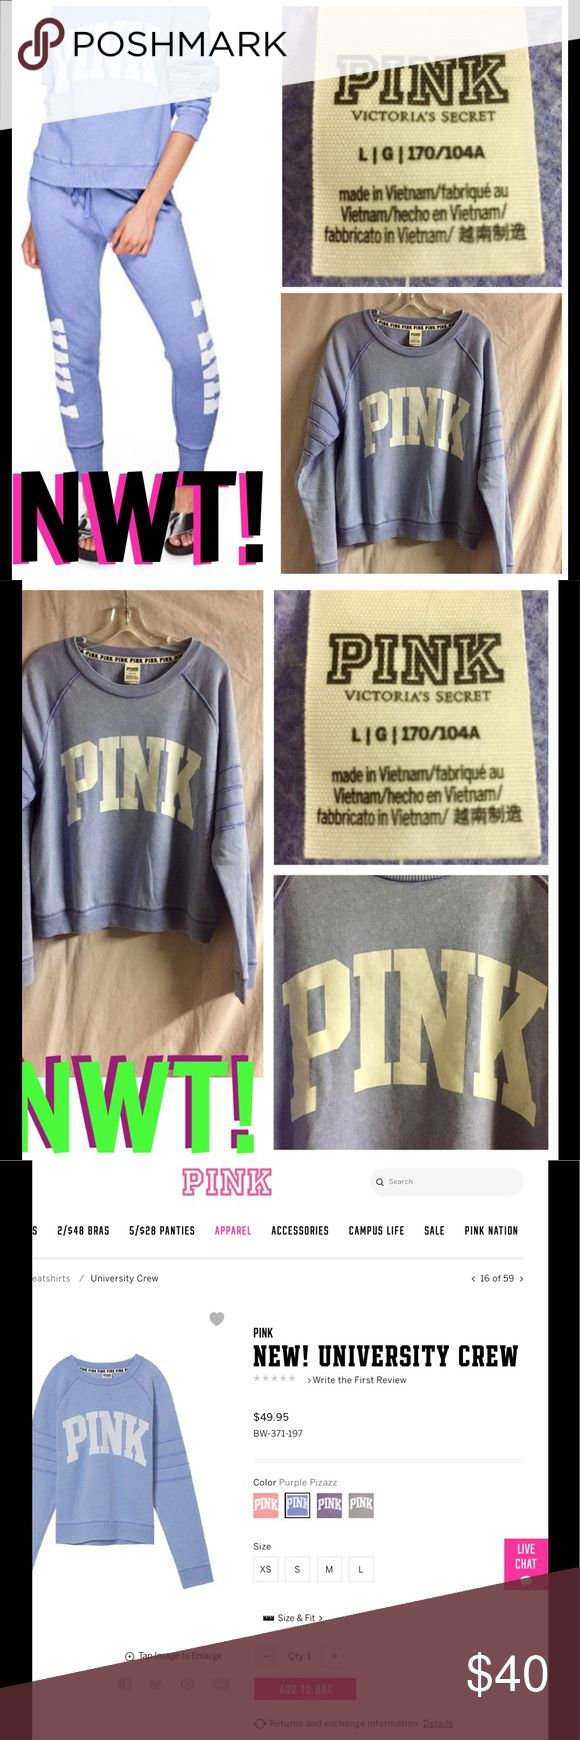 NWT! NEW PINK UNIVERSITY CREW NWT & NEW @ PINK! PINK UNIVERSITY CREW IN PURPLE PIZAZZ. Made of lightweight terry w/added stretch for a little bounce. Has a very relaxed fit & dropped shoulders. The bottom hem also sits at your hips. ⭐️MATCHING LACE-UP SKINNY COLLEGIATE PANTS ALSO AVAILABLE!⭐️THIS IS VERY OVERSIZED!⭐️❌🚫I AM SORRY I DO NOT TRADE OR APPRECIATE LOWBALL OFFERS-THANKS!❌🚫🚭 &🚫🐾🐈🐩🦑🐟ENVIRONMENT-LOL! PINK Victoria's Secret Tops Sweatshirts & Hoodies